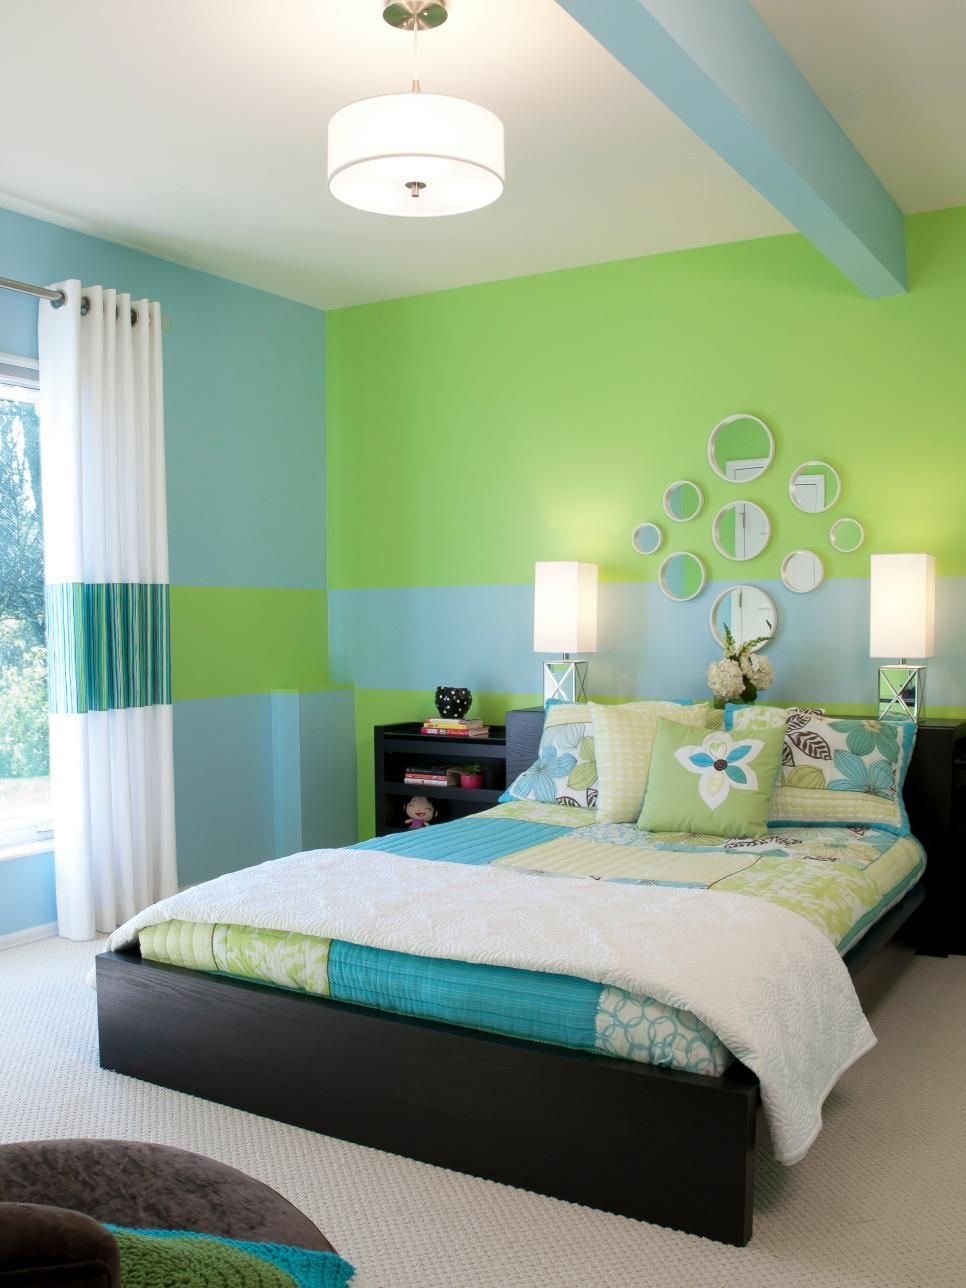 4 Creative Wall Murals for Kids  Green bedroom decor, Indian